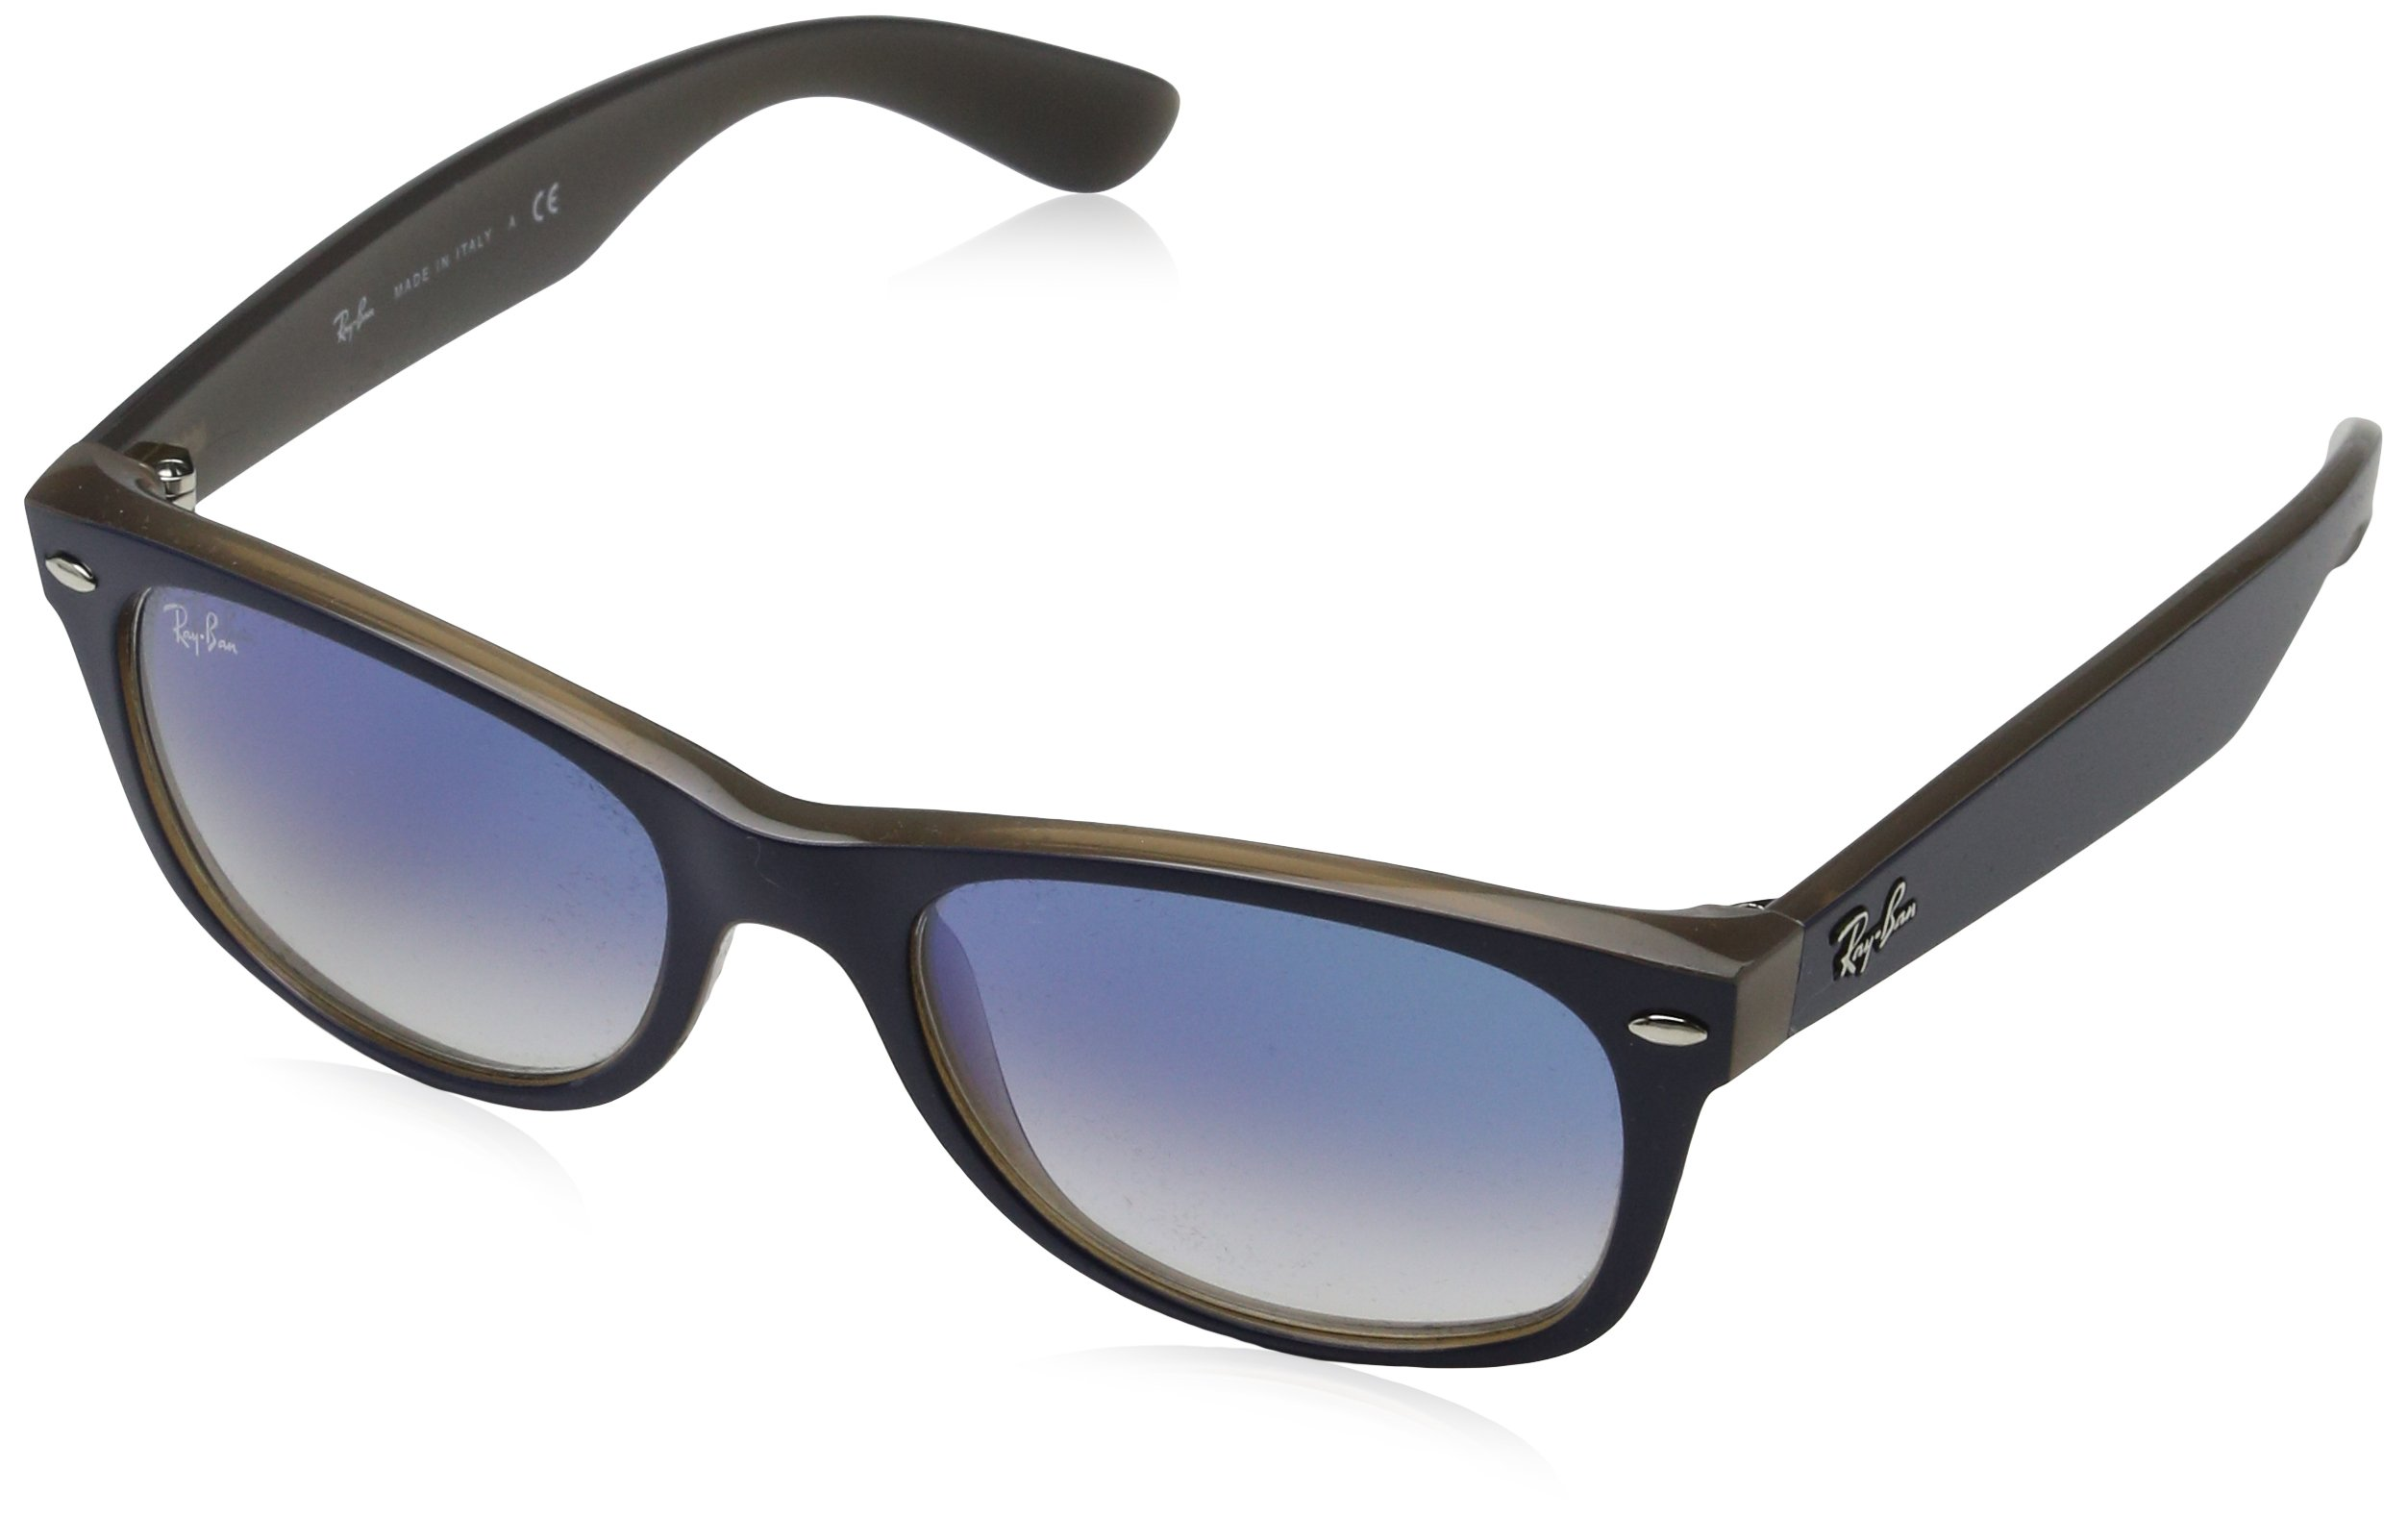 RAY-BAN RB2132 New Wayfarer Sunglasses, Matte Blue On Brown/Blue Gradient, 52 mm by RAY-BAN